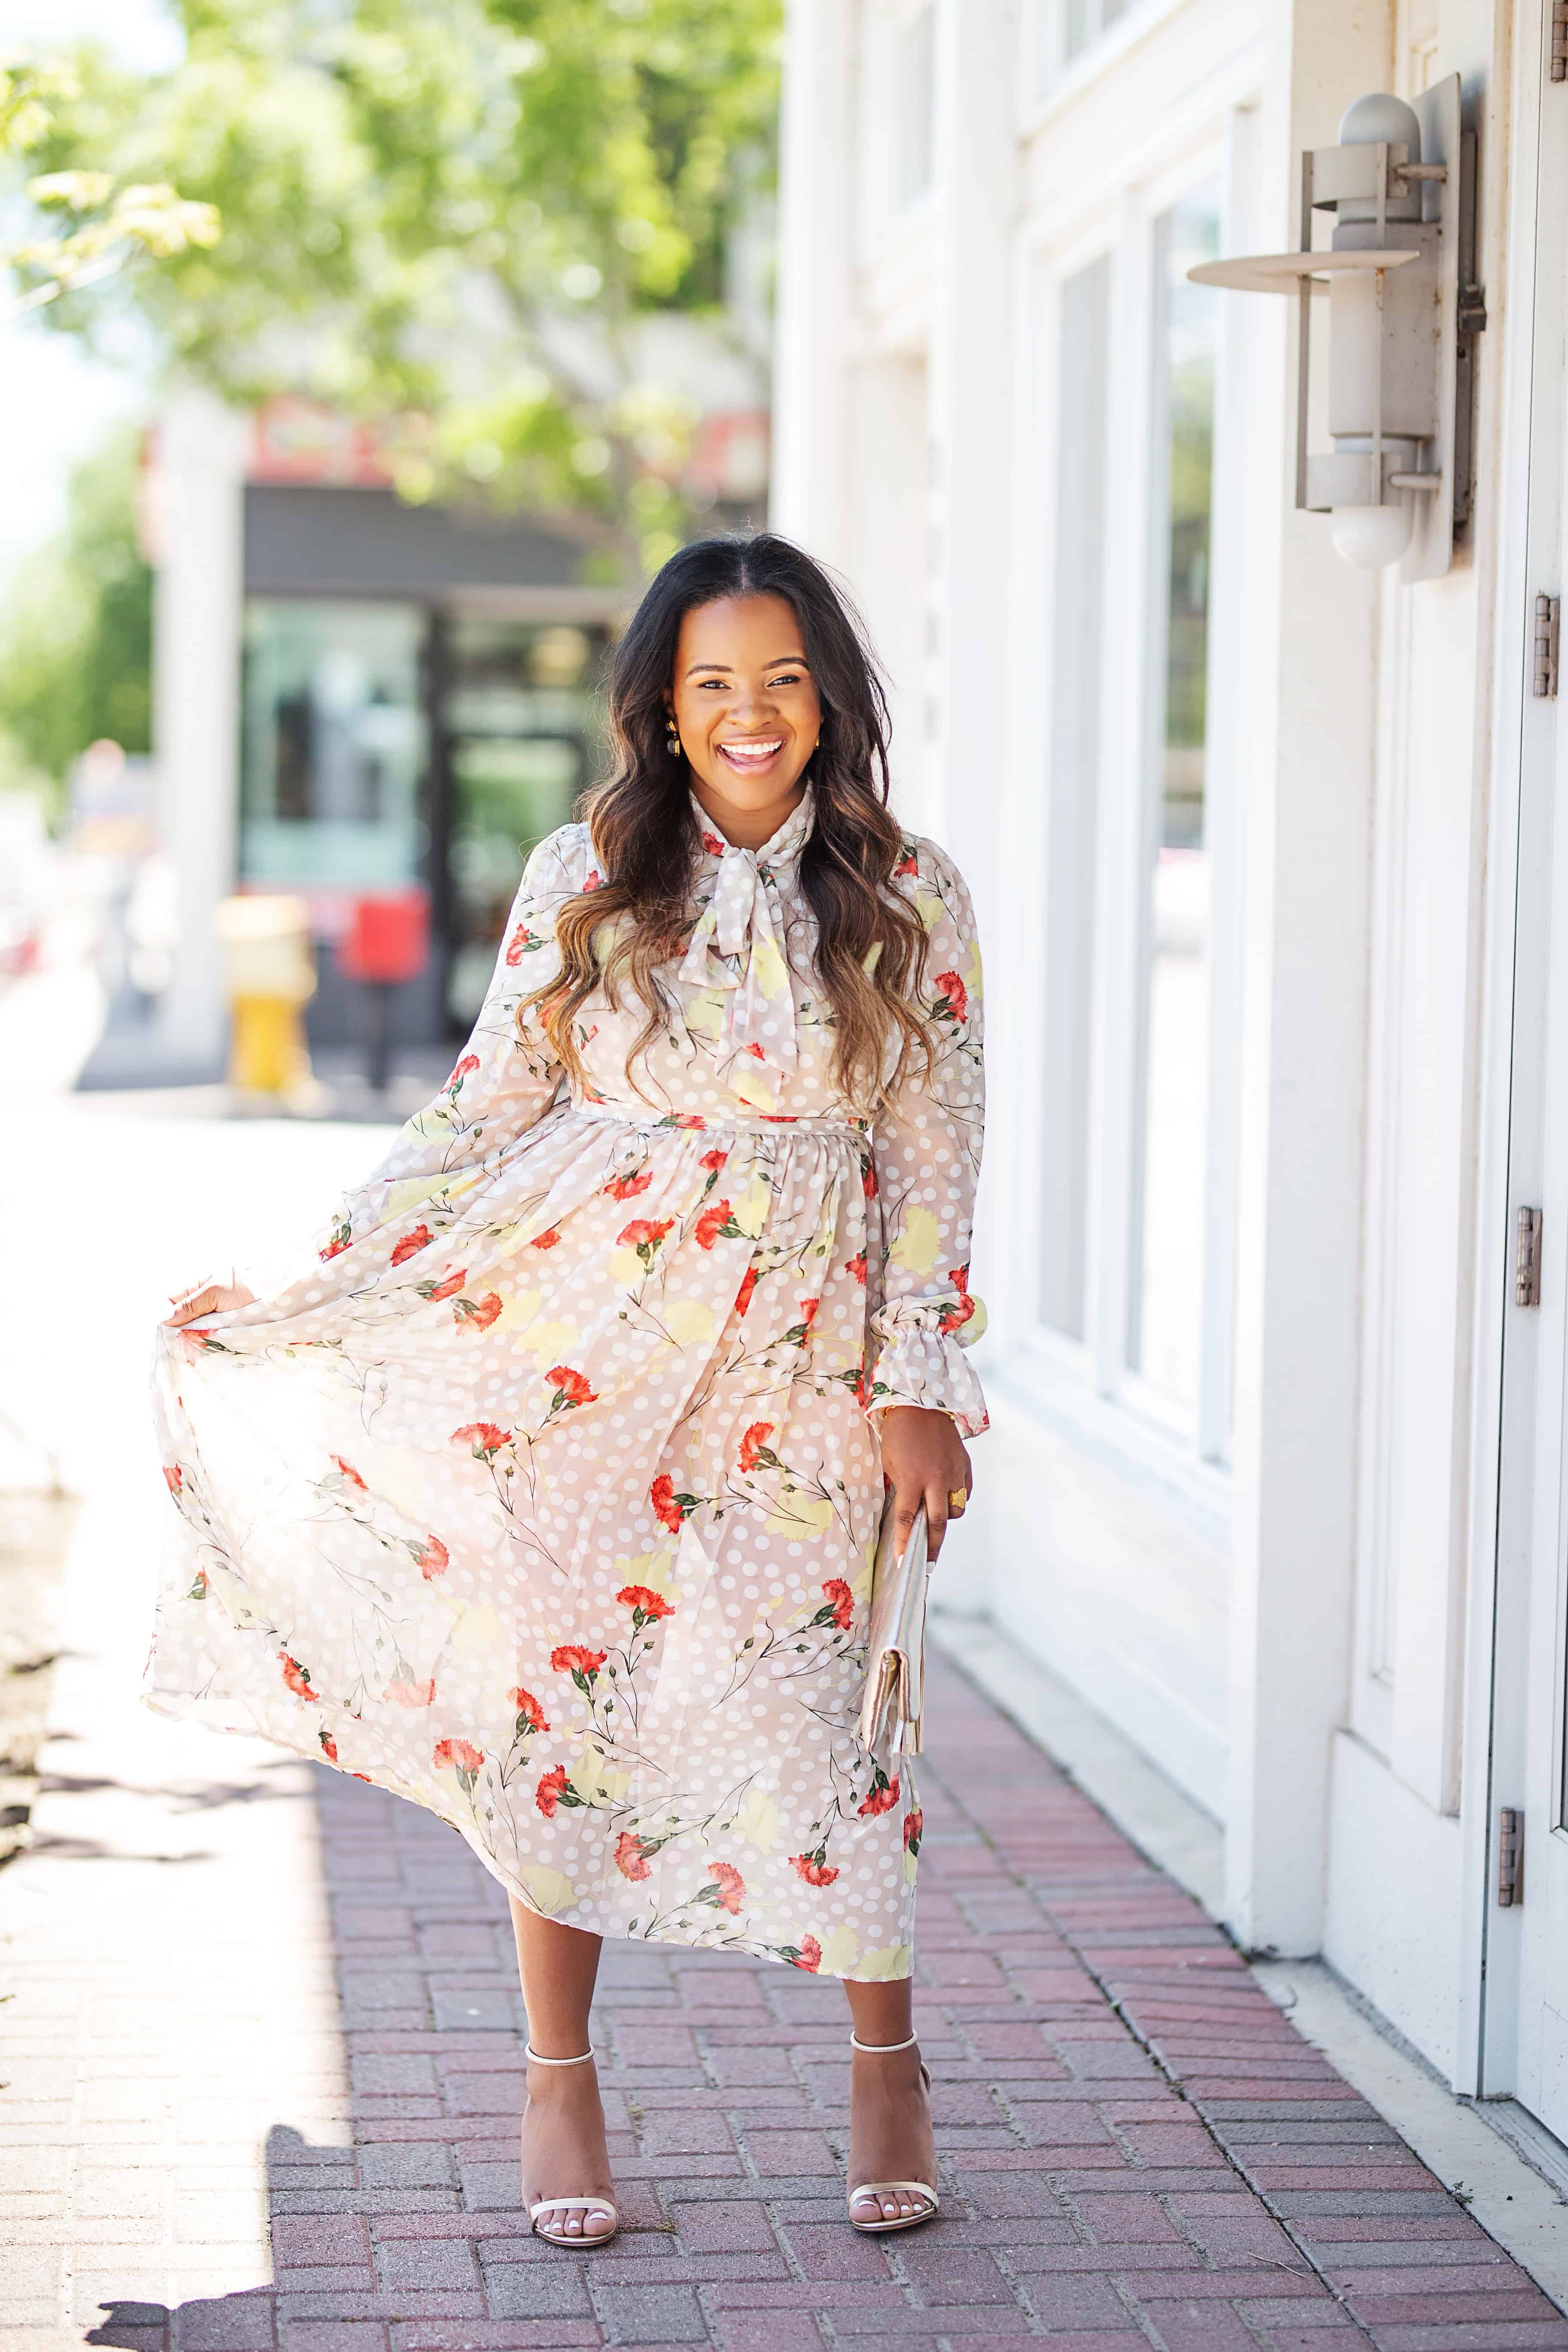 20 Cute Wedding Guest Dresses Under $50 featured by top US fashion blog, Glamorous Versatility